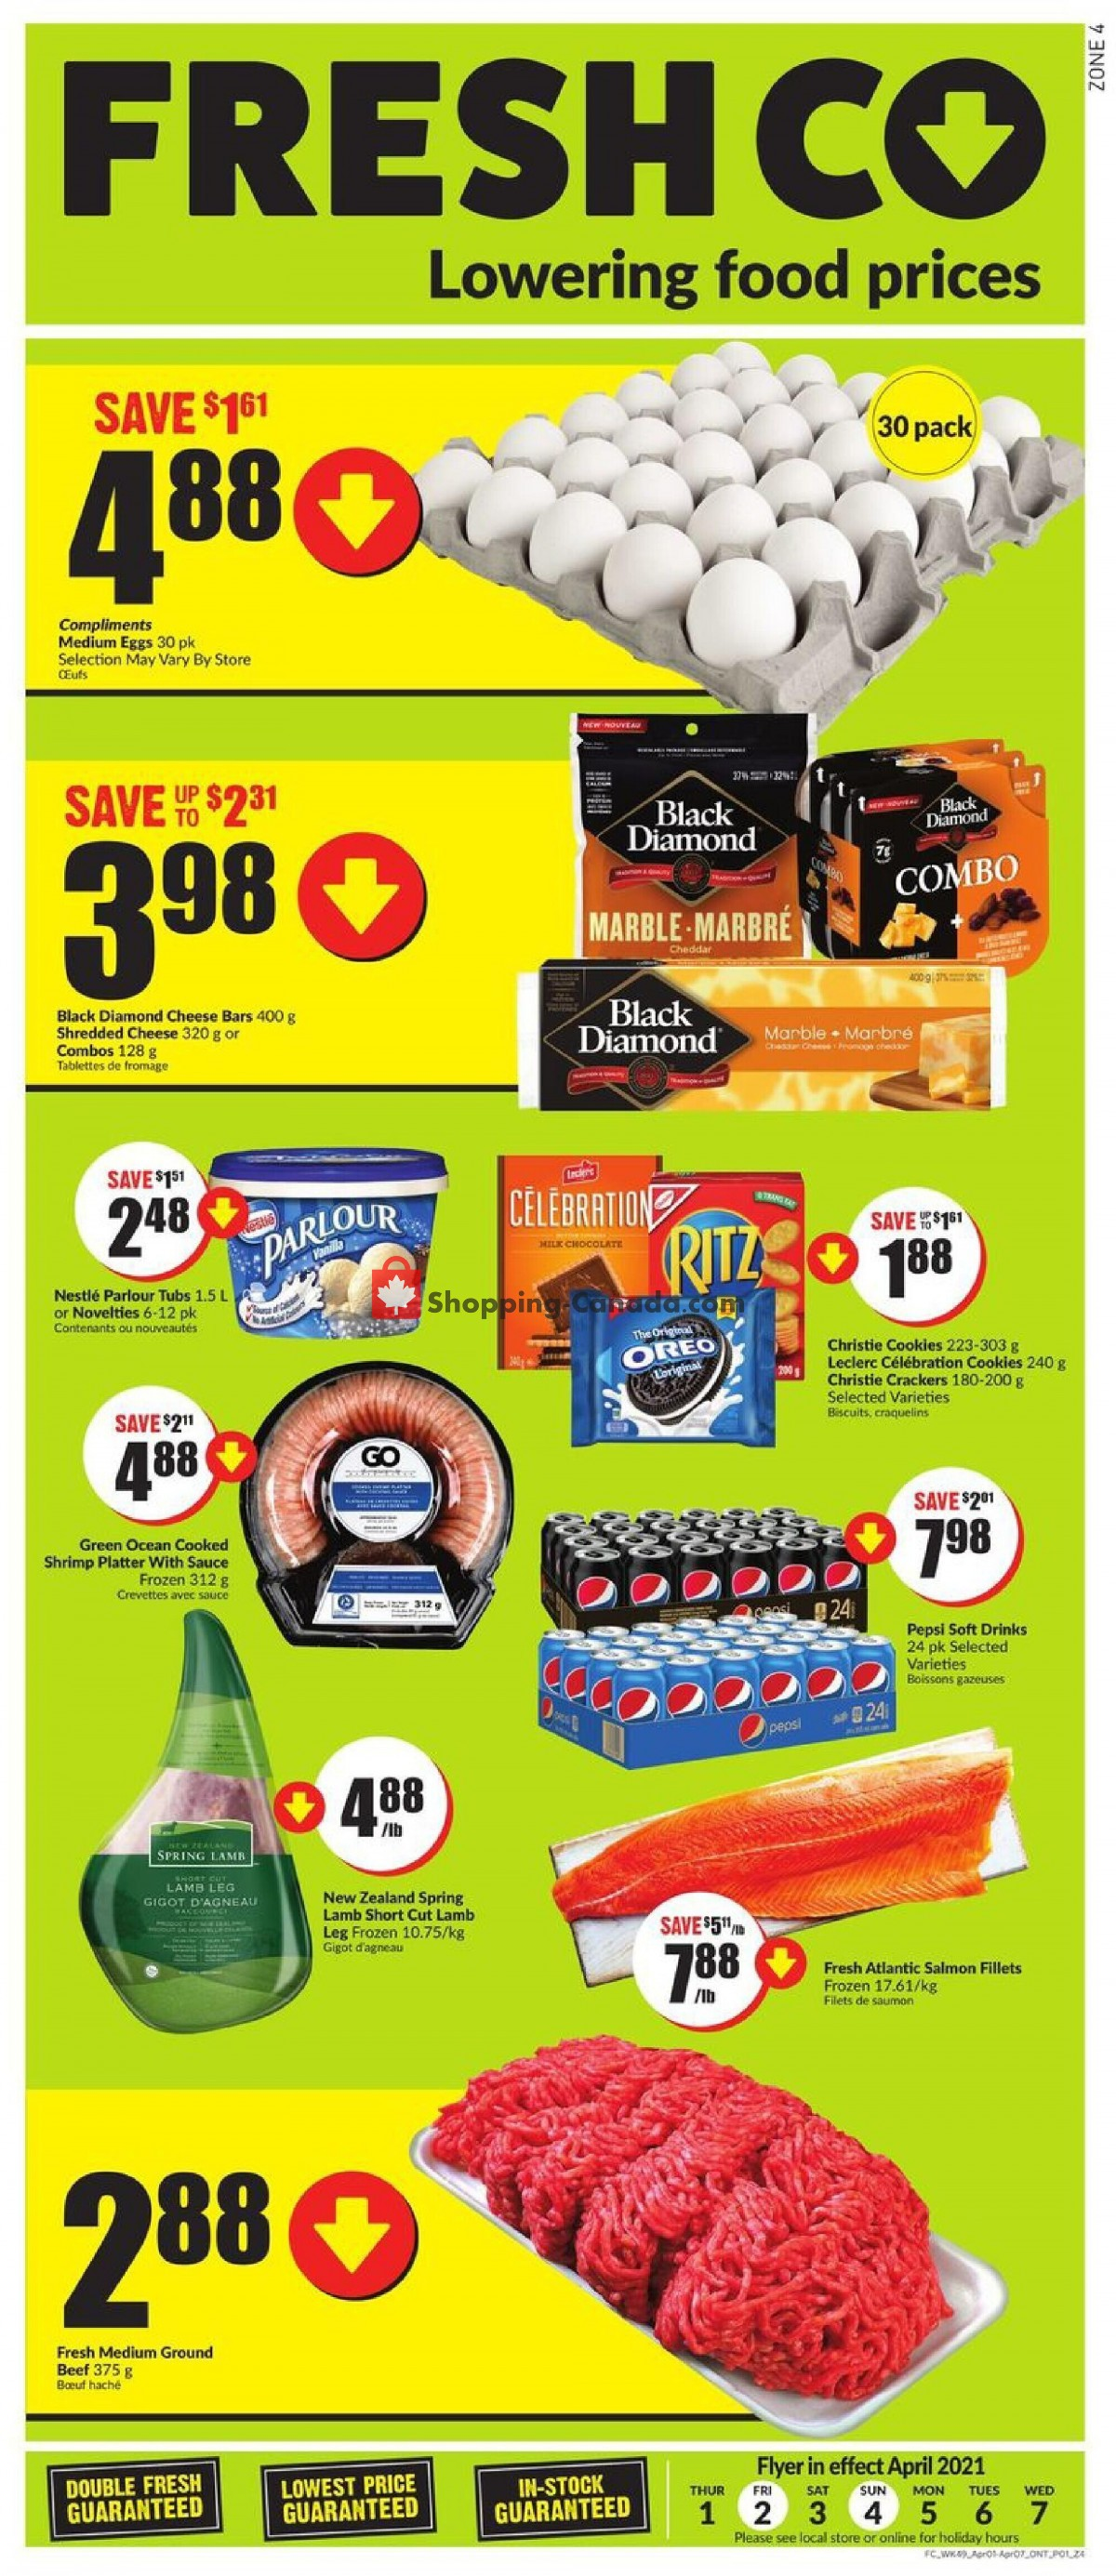 Flyer FreshCo Canada - from Thursday April 1, 2021 to Wednesday April 7, 2021